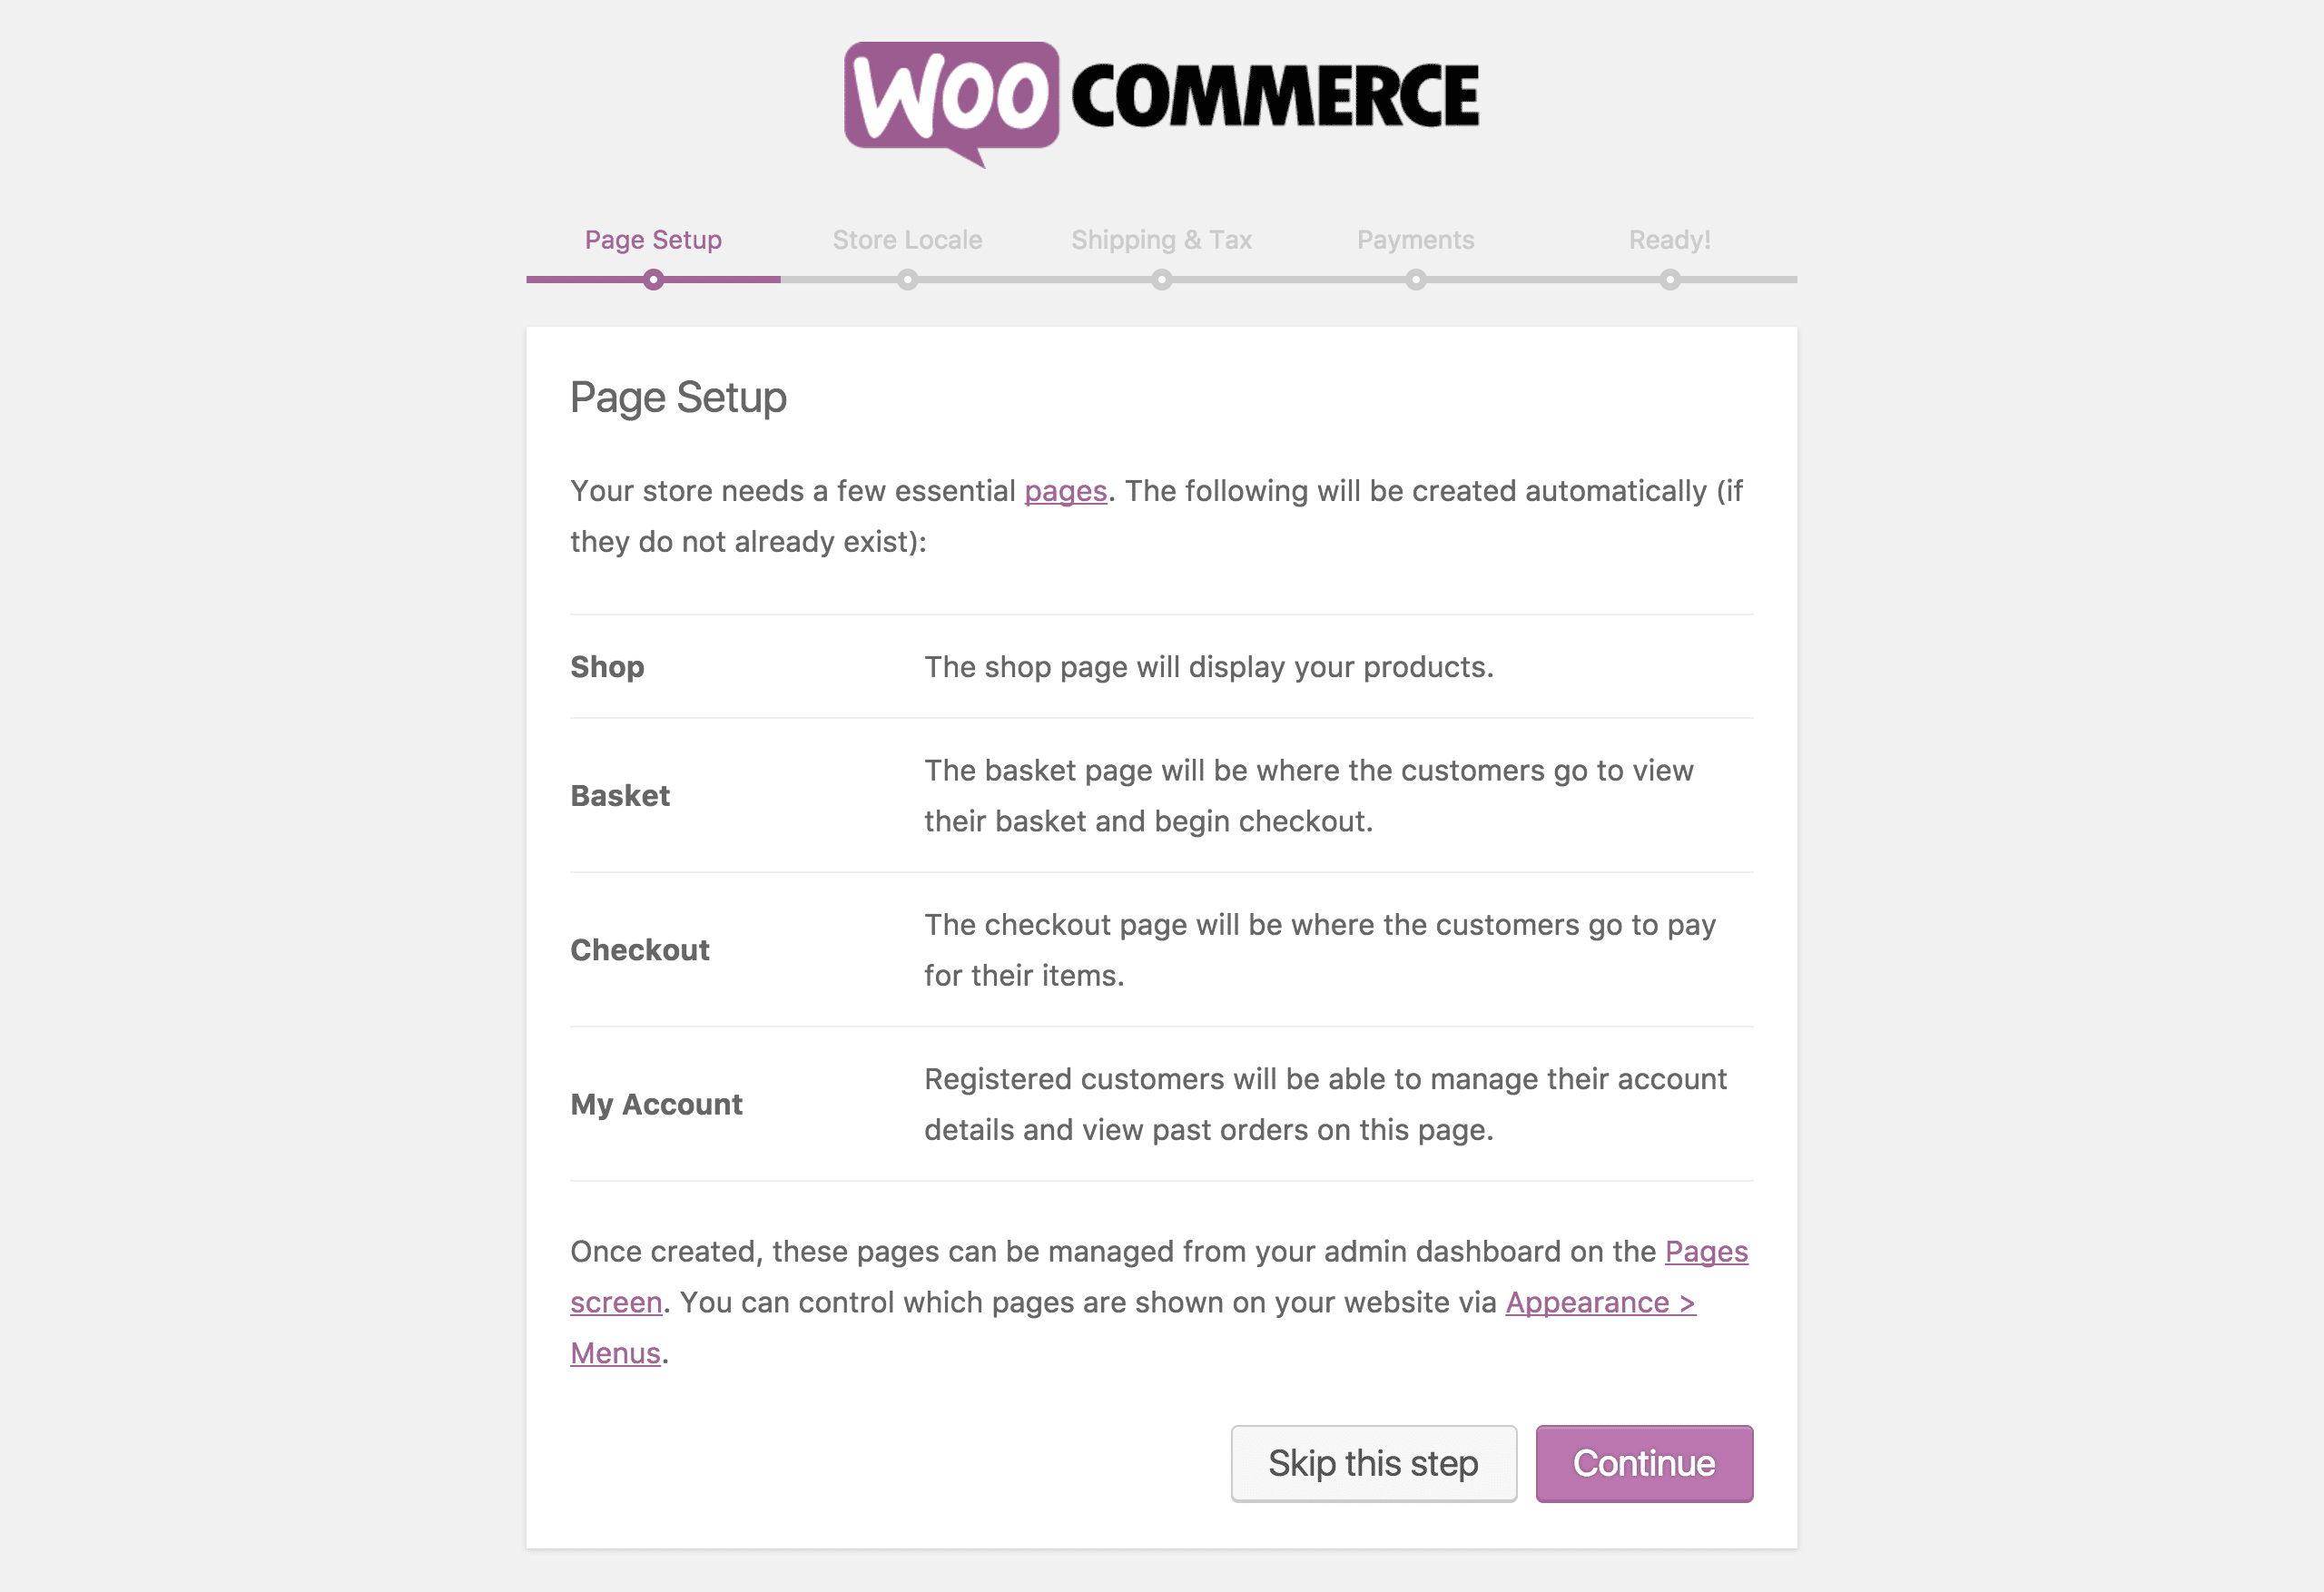 Second step of the WooCommerce Setup Wizard.